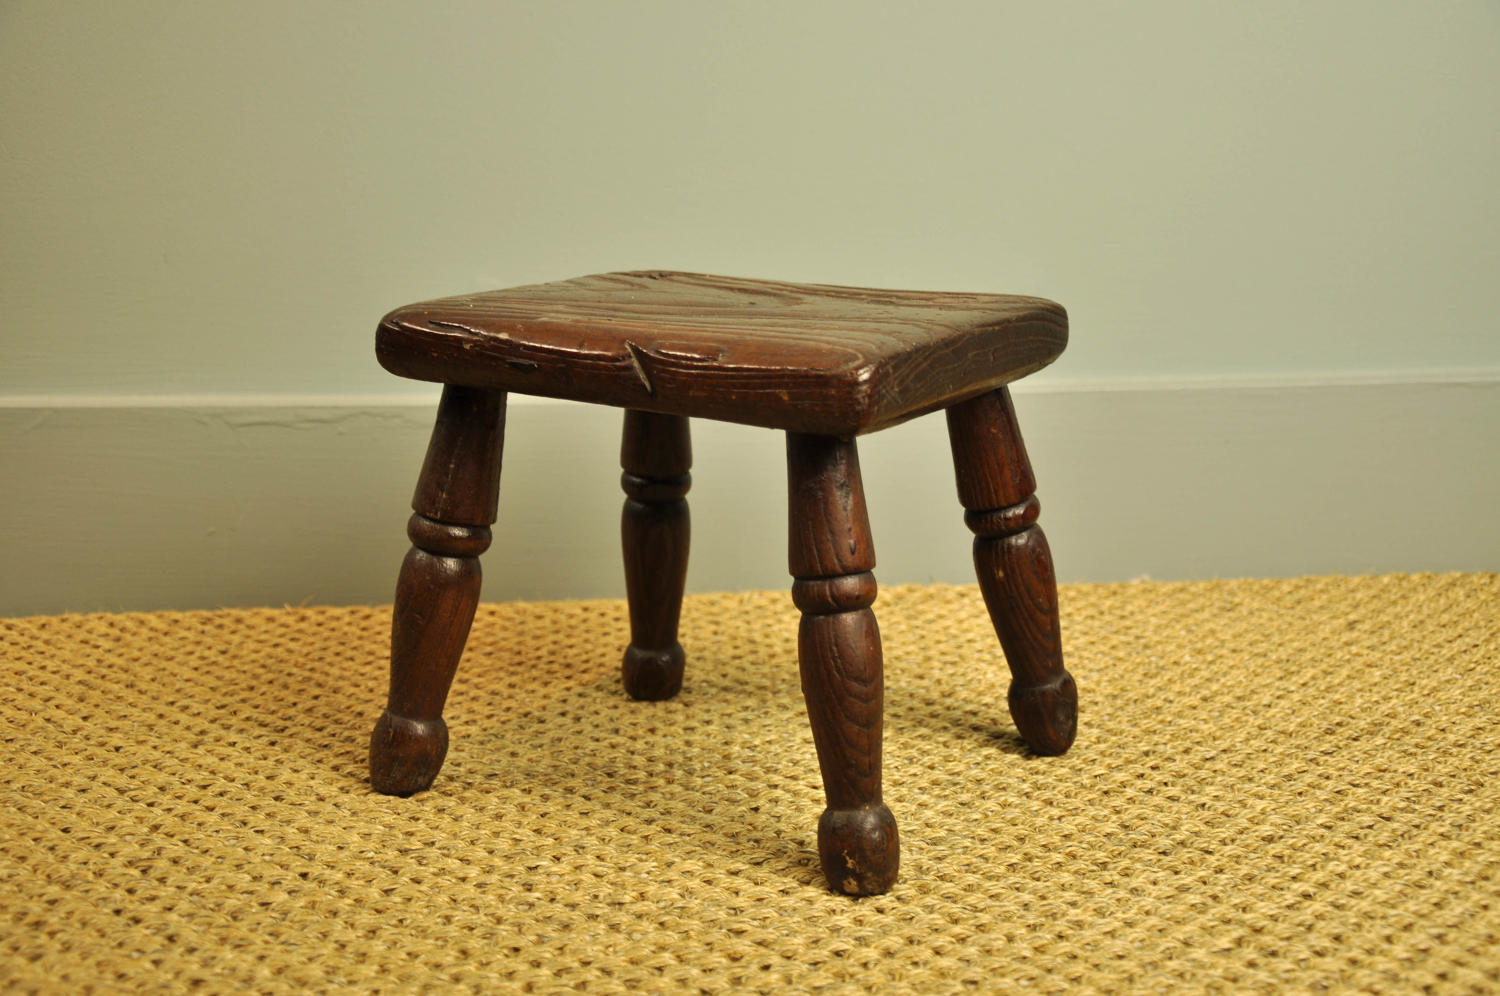 19th century elm stool